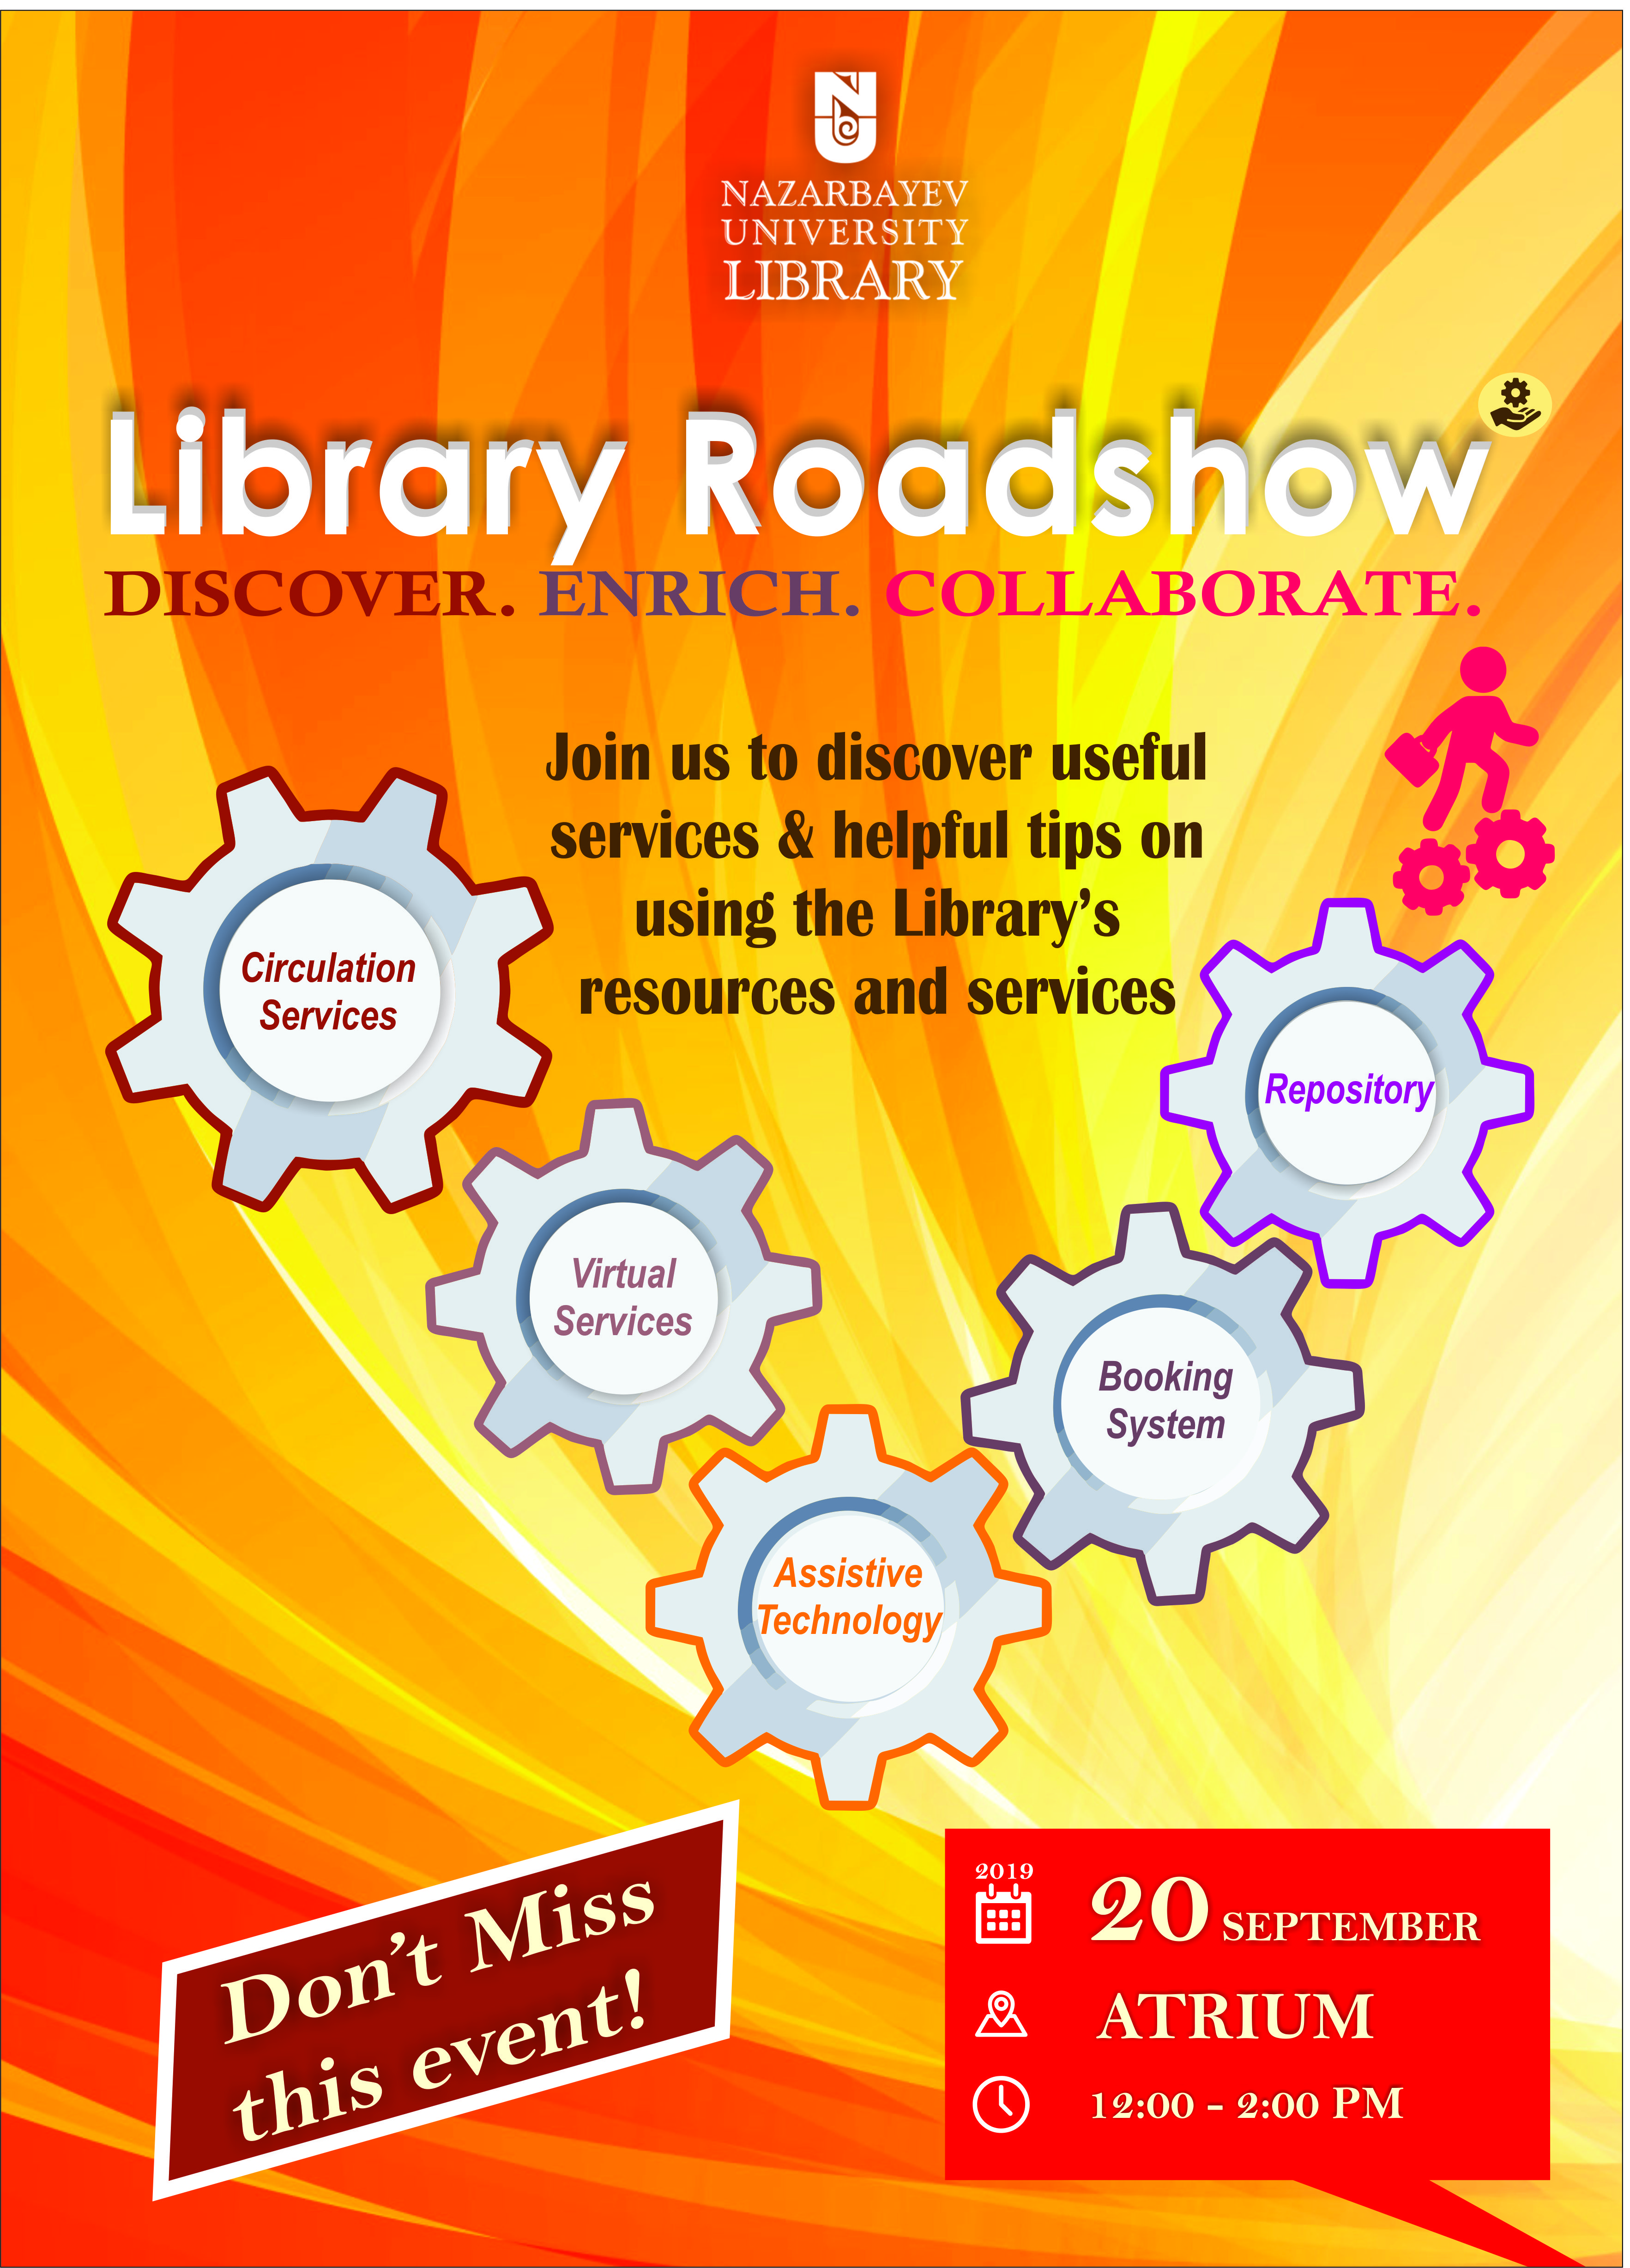 Library Roadshow 2019: Discover. Enrich. Collaborate.